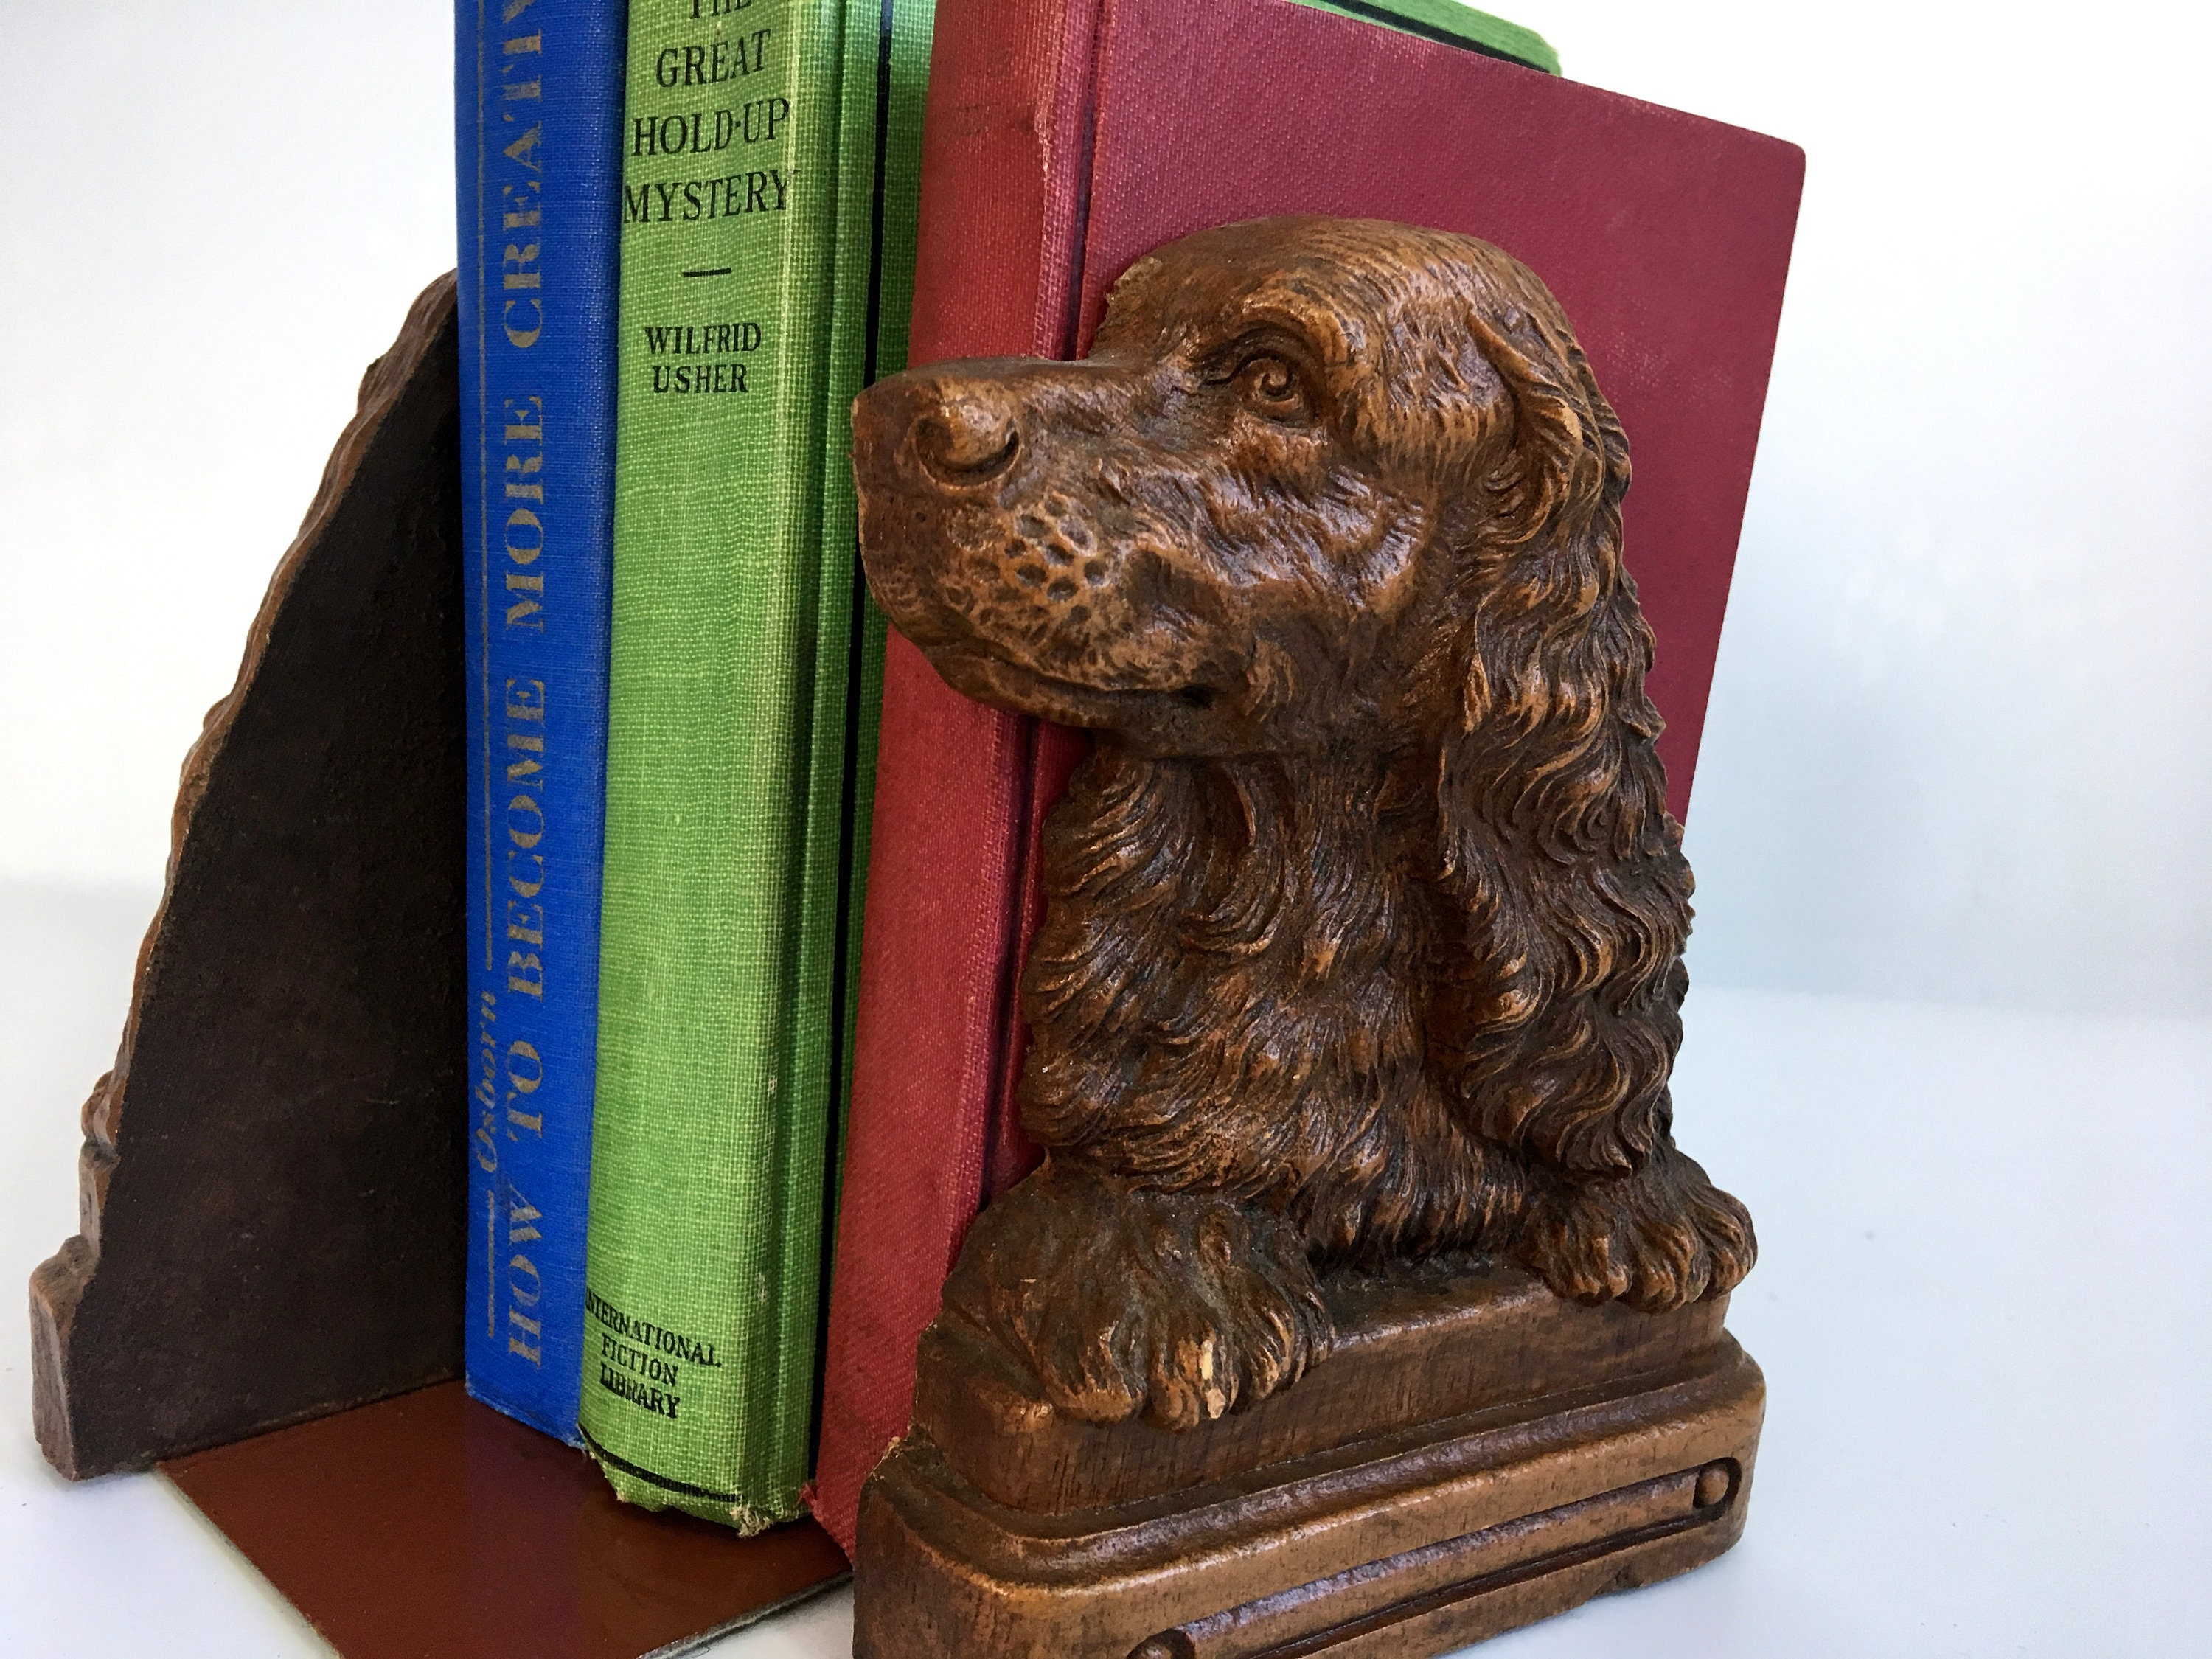 2 Vintage Syroco Dog Motif Bookends - Pair of Vintage